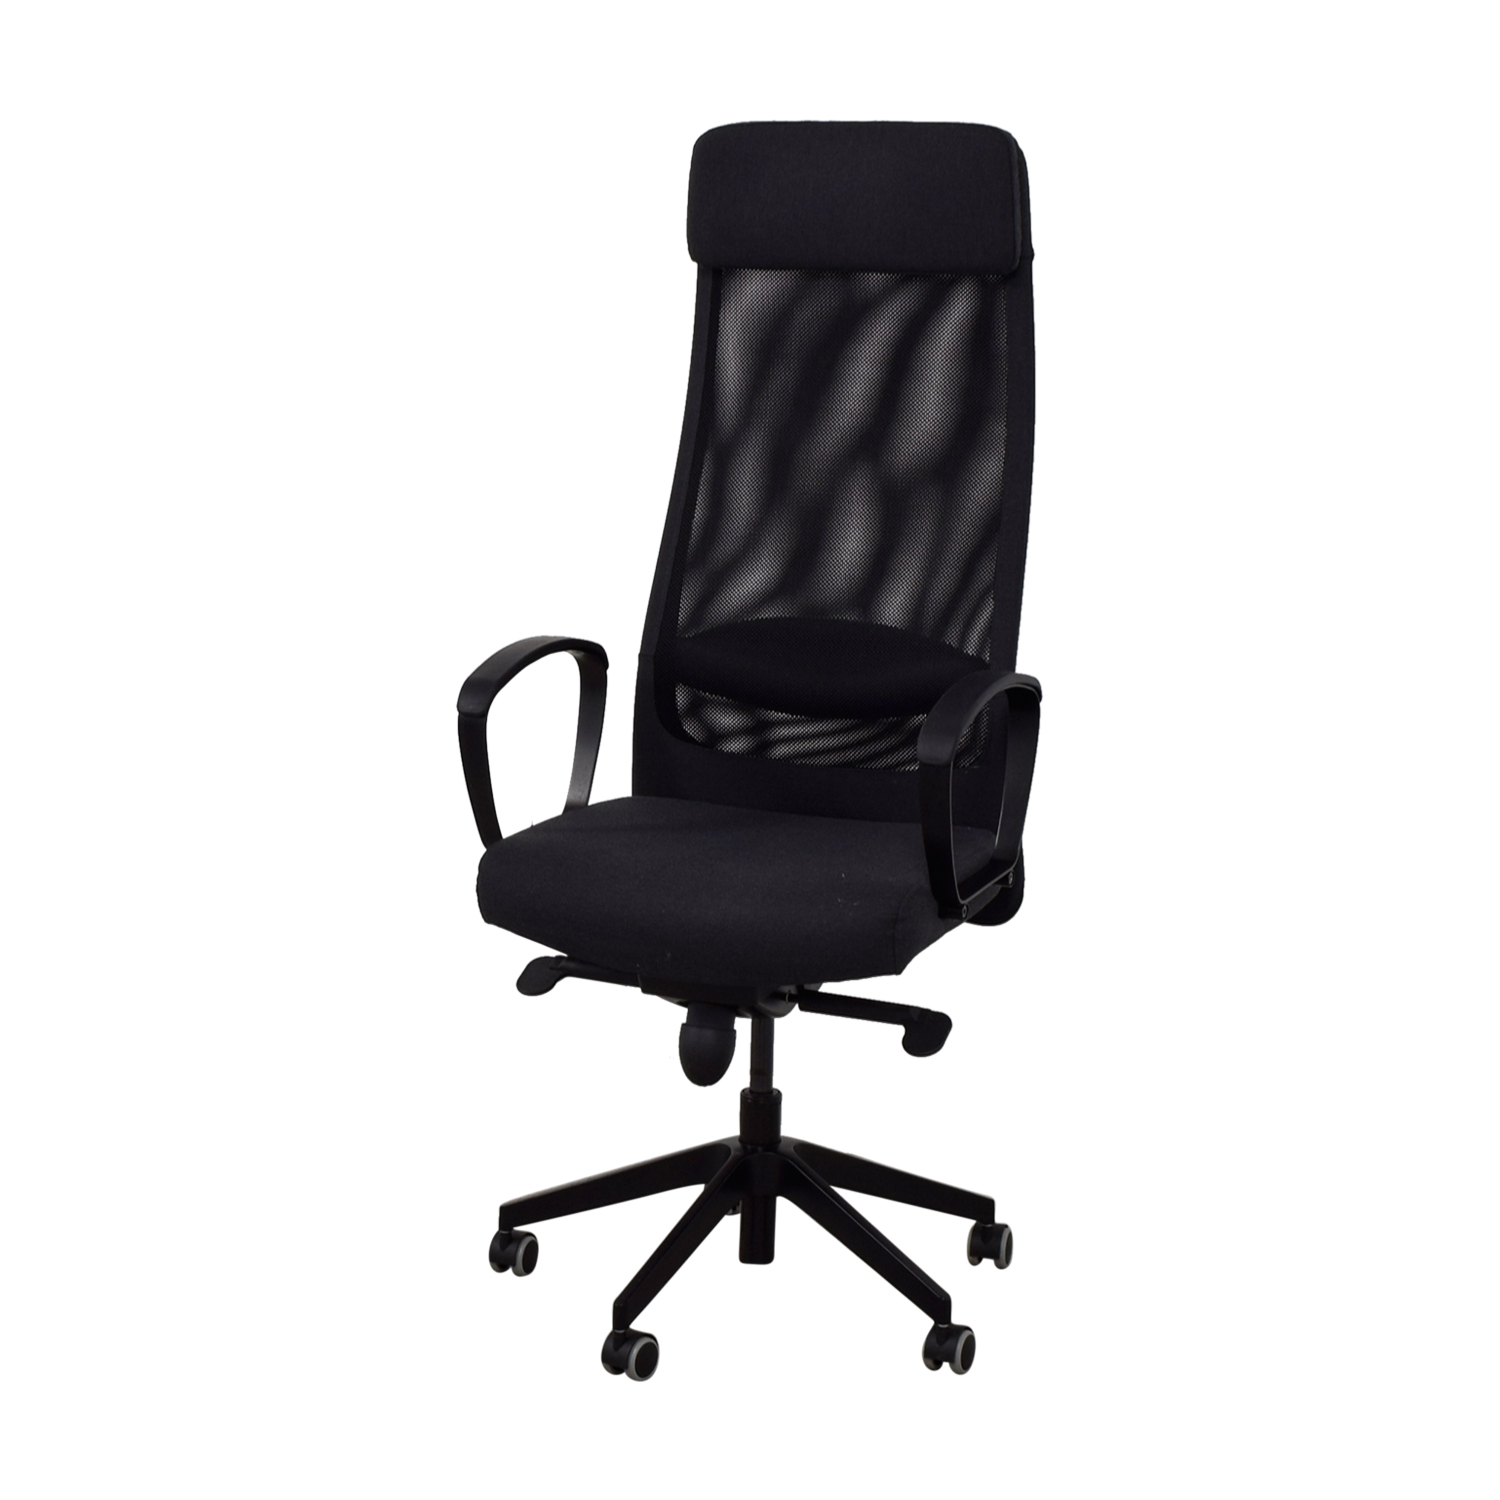 68 off ikea ikea black office chair chairs. Black Bedroom Furniture Sets. Home Design Ideas